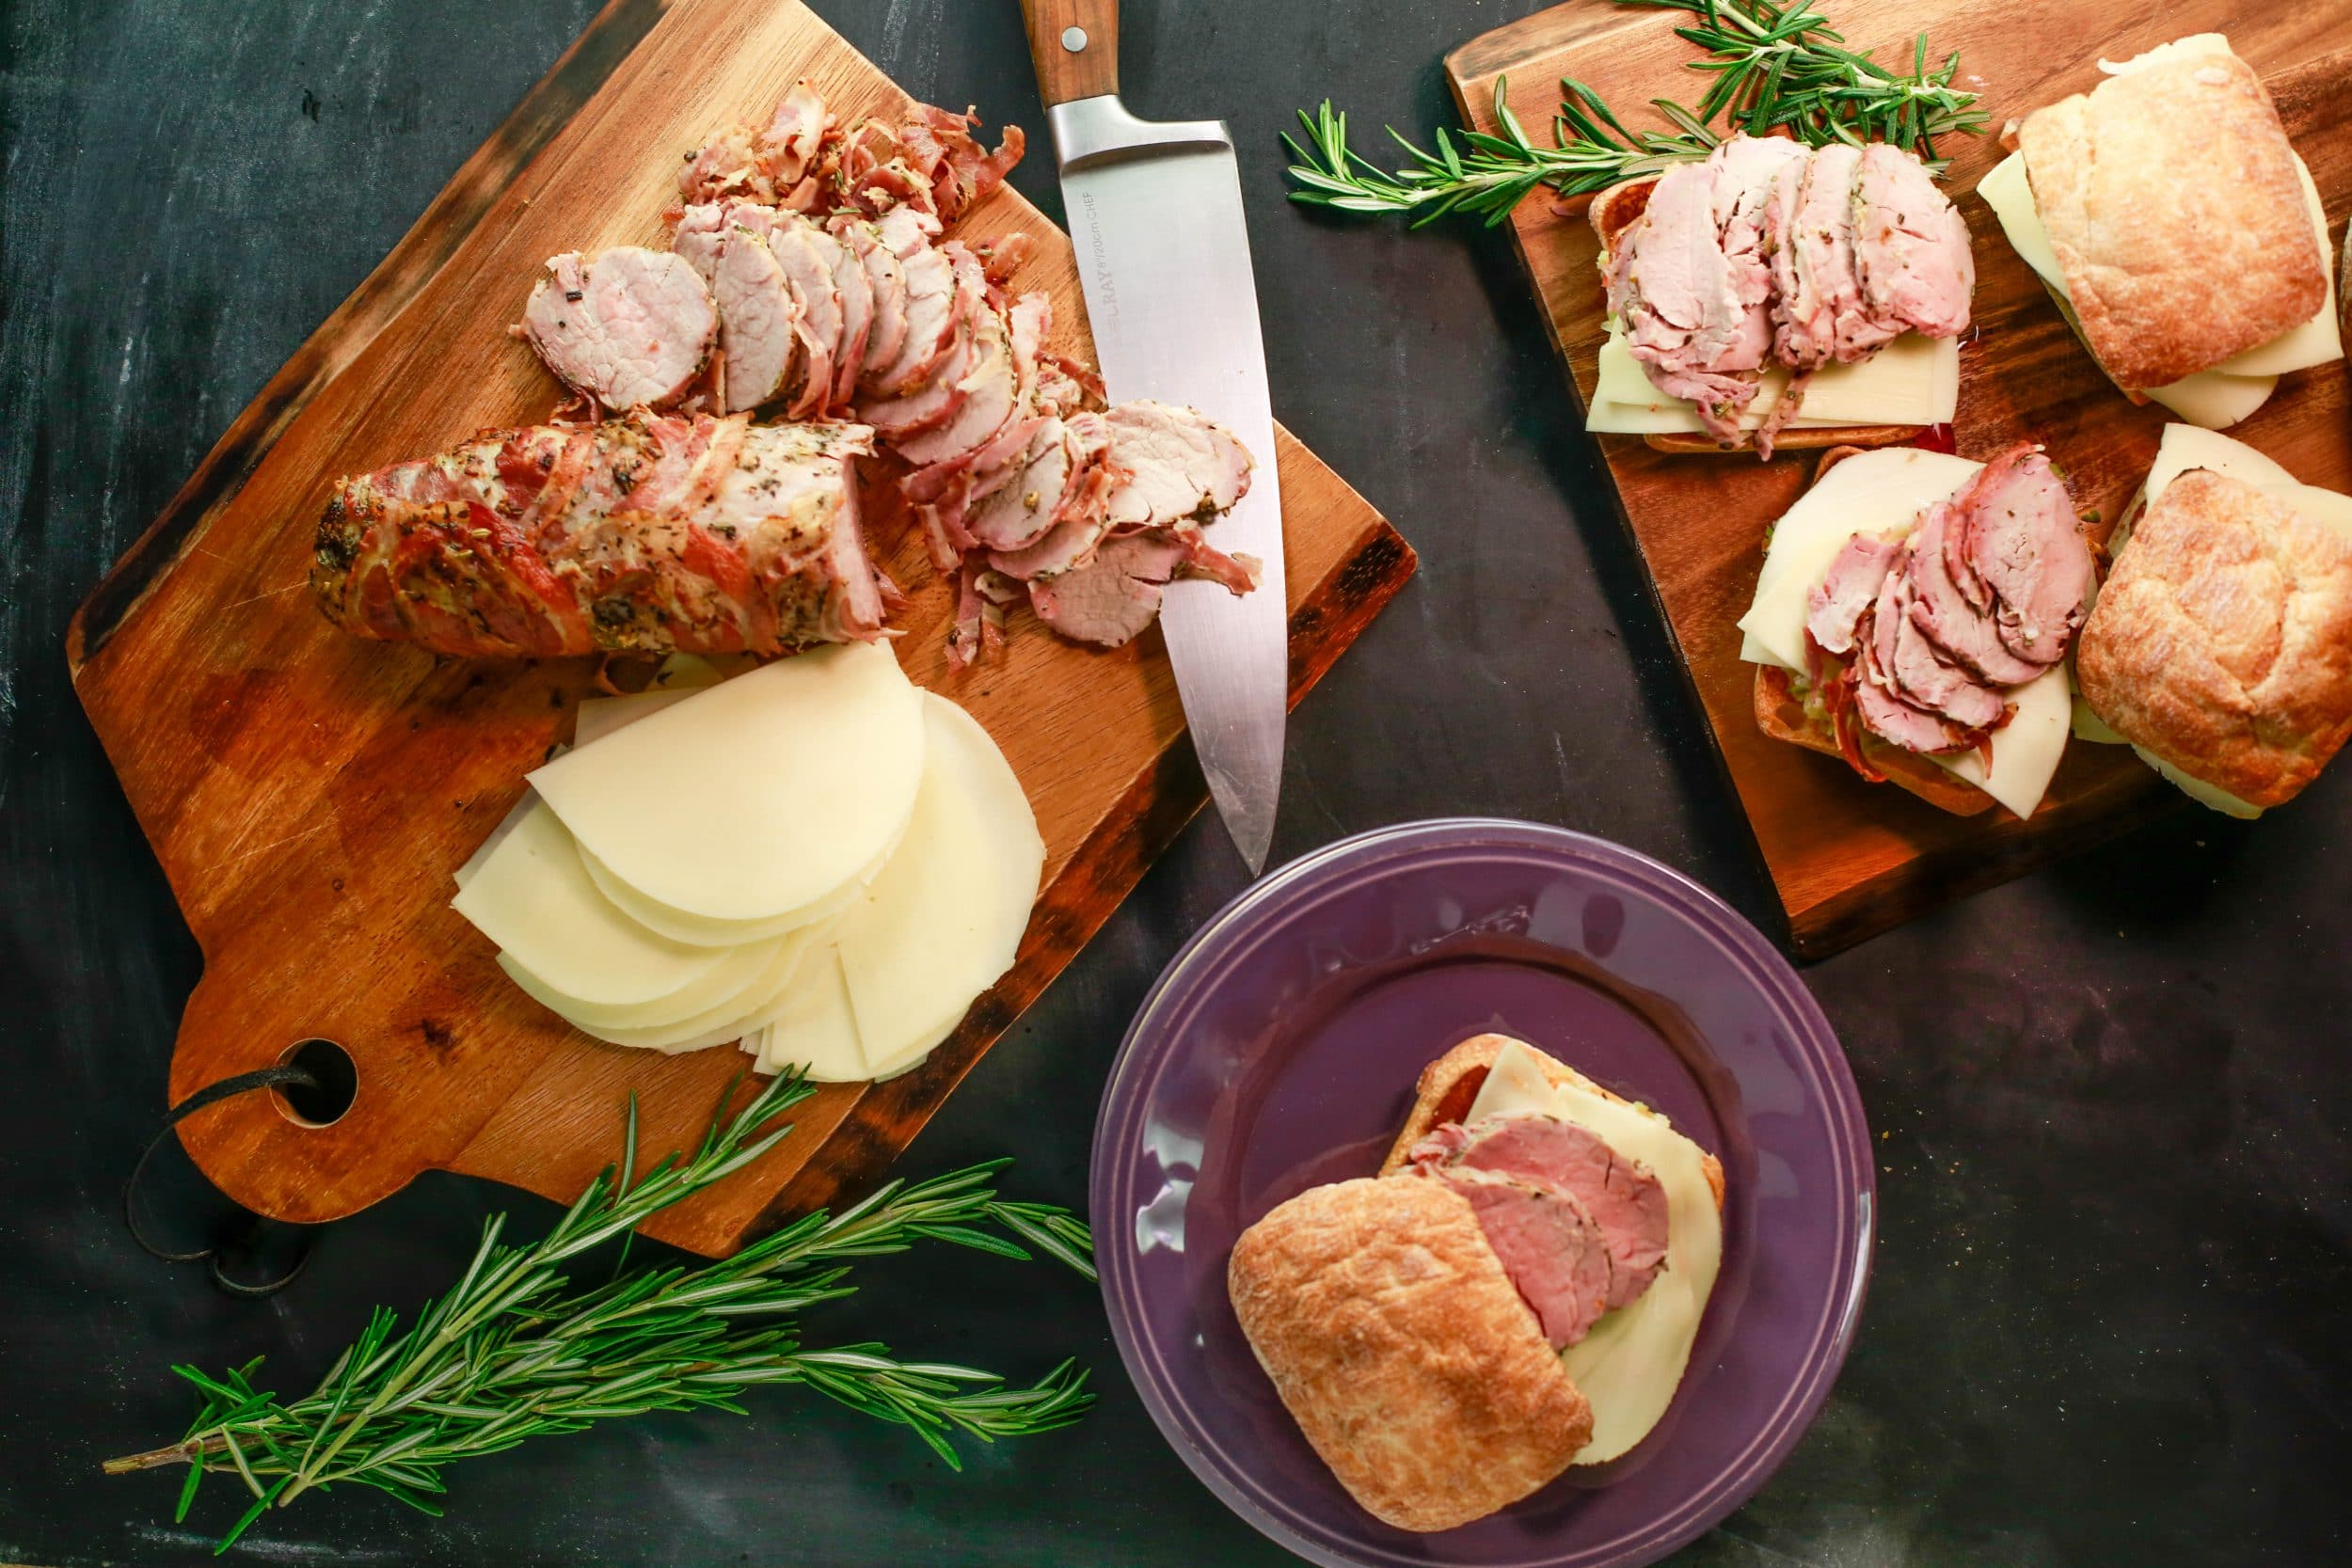 Weeknight Porchetta Tenderloin on Ciabatta, Muffaletta-Style